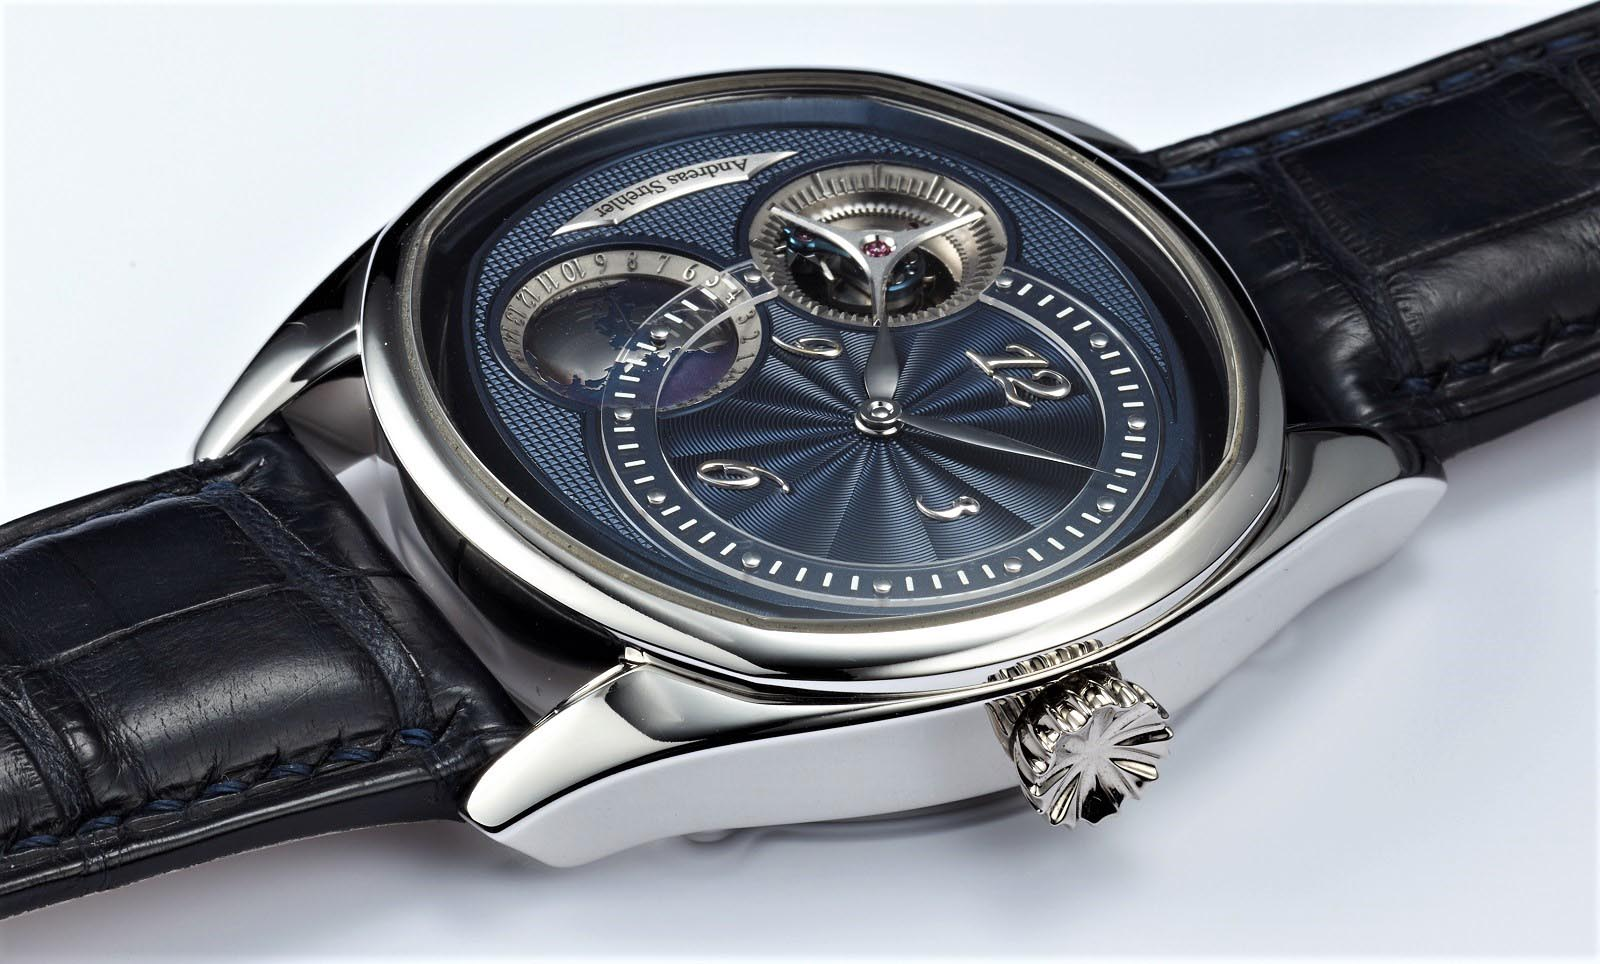 Andreas Strehler Time Zone Watch 51